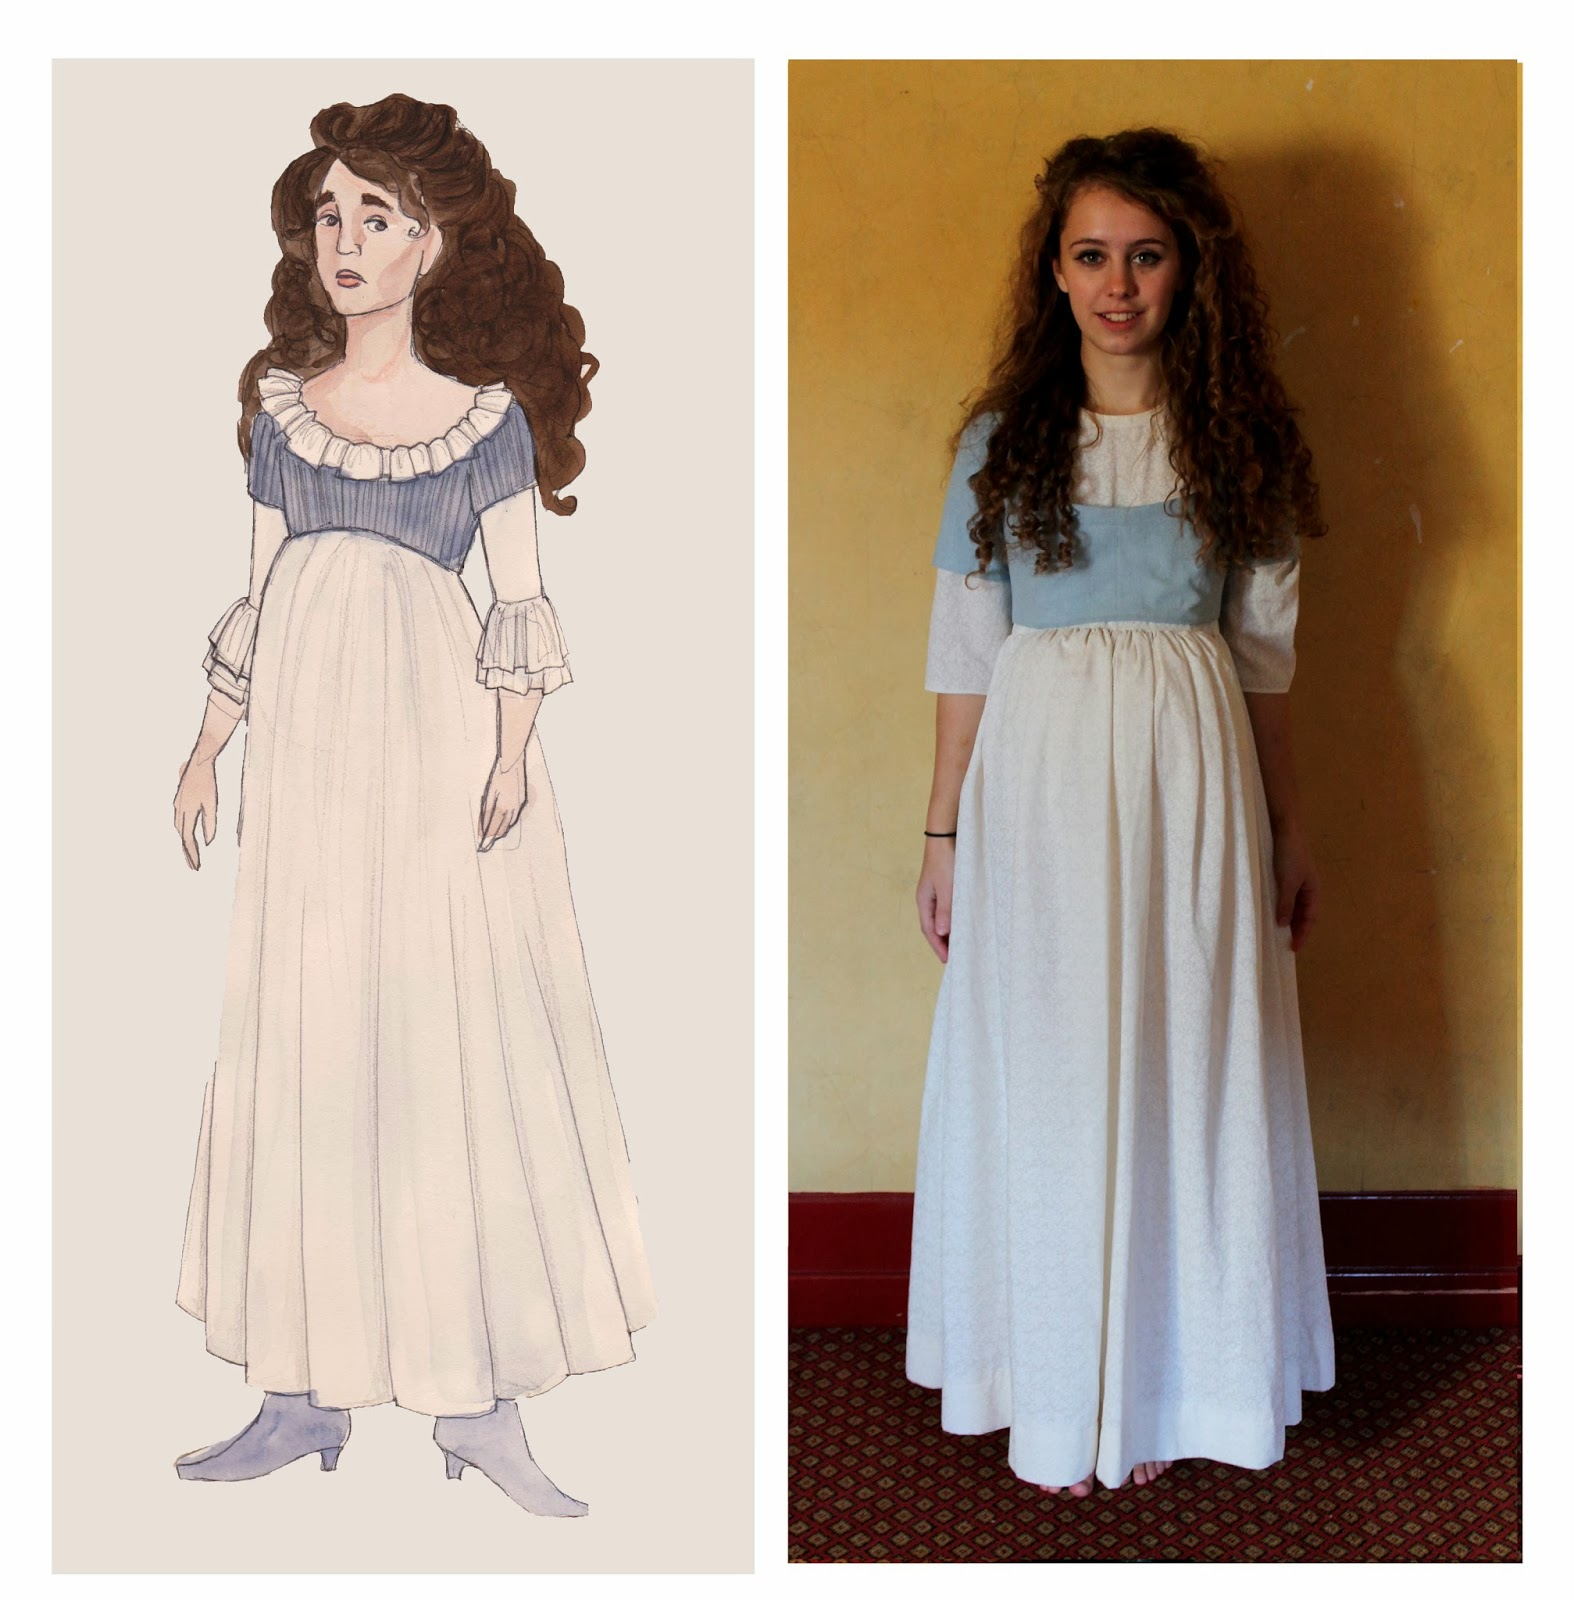 rachael fraser wuthering heights cathy s dresses  passed since heathcliffe left wuthering heights so the dresses are starting to lean towards the later styles of higher waists